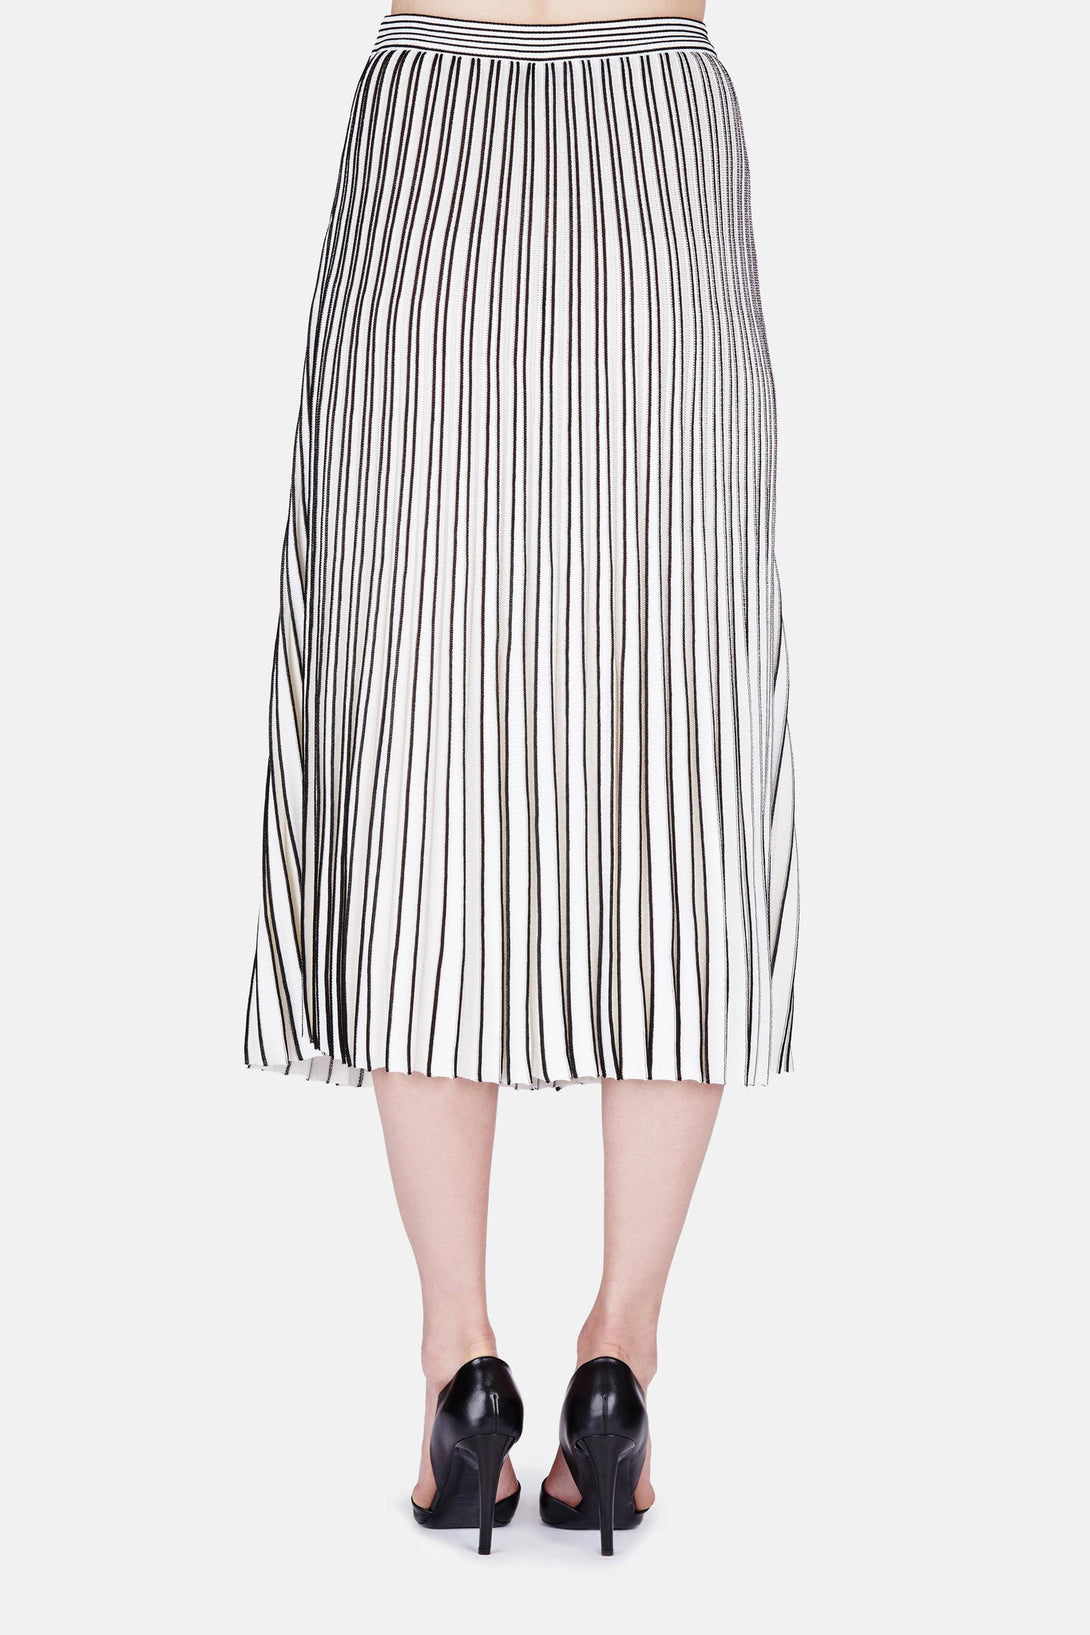 Long Pleated Knit Skirt - Off White/Black – The Line